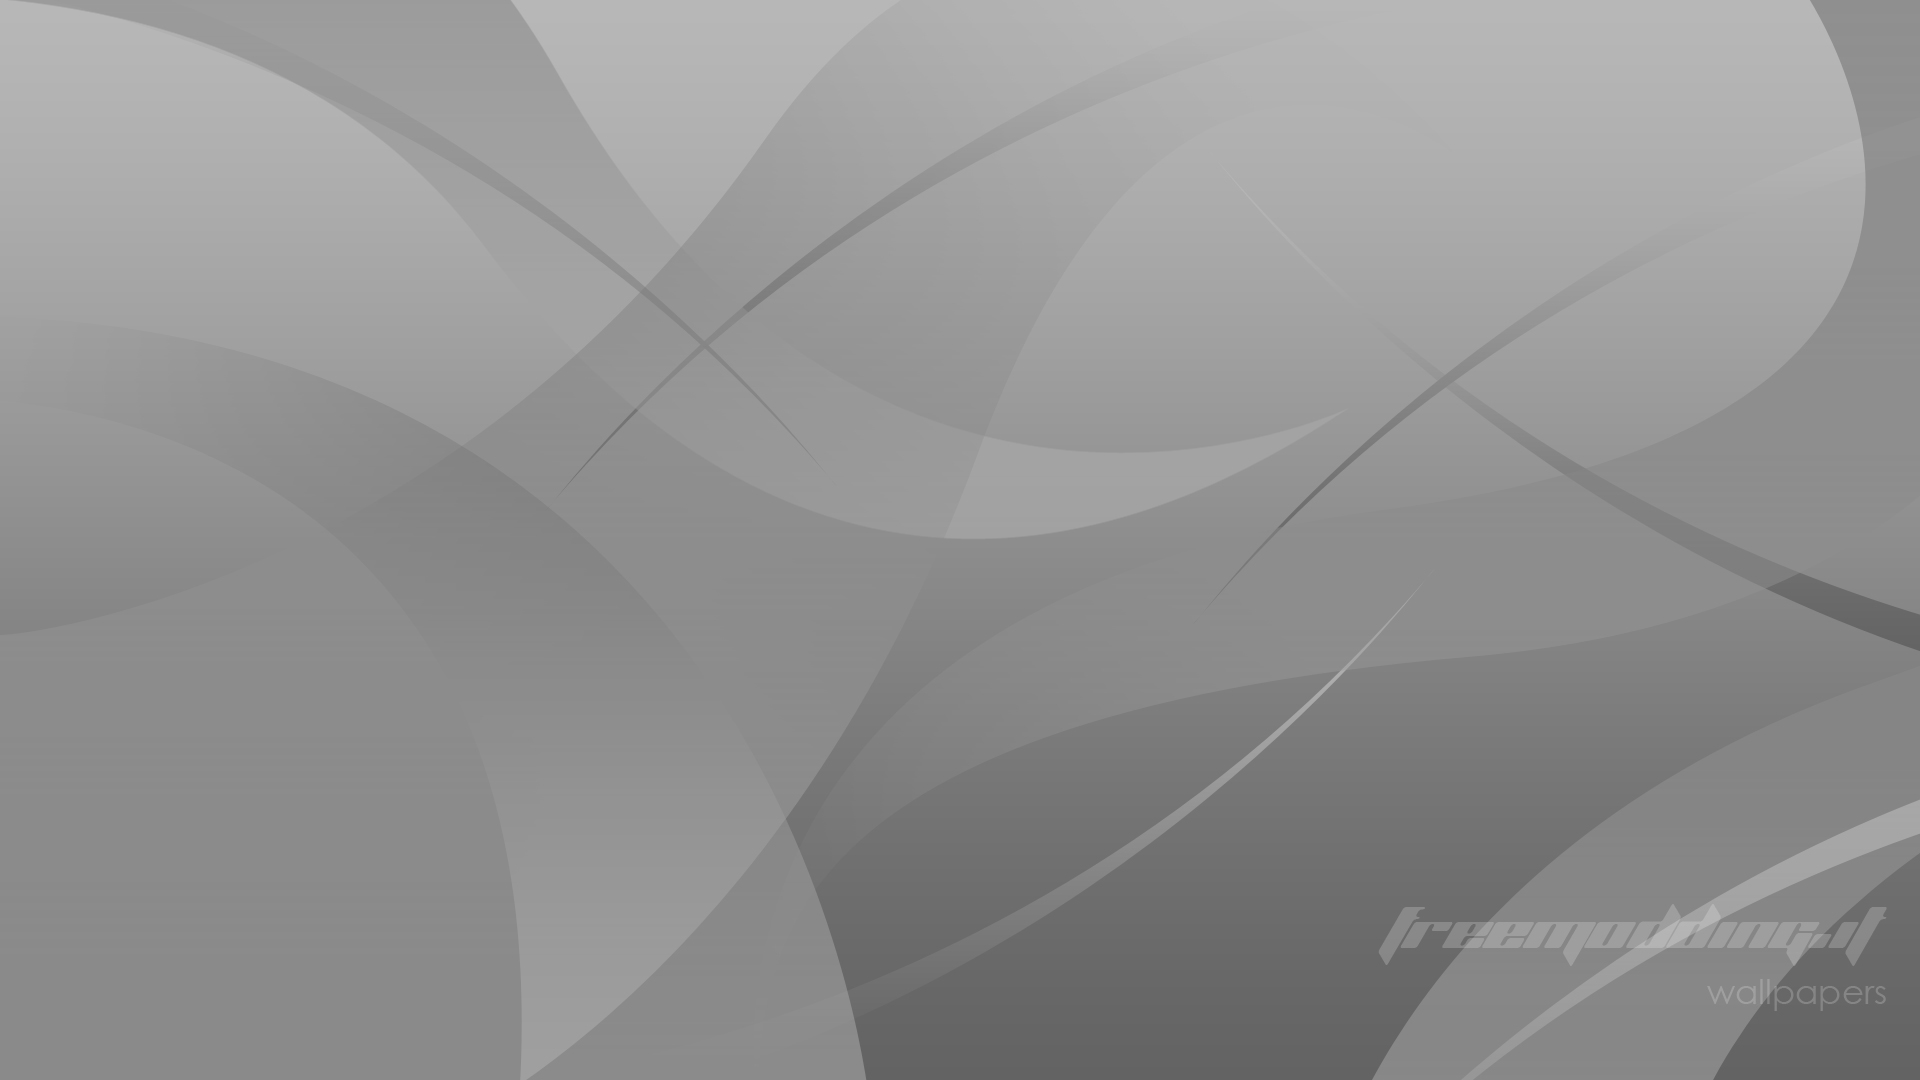 Tentacles HD Wallpaper Abstract Gray Version by Freemodding